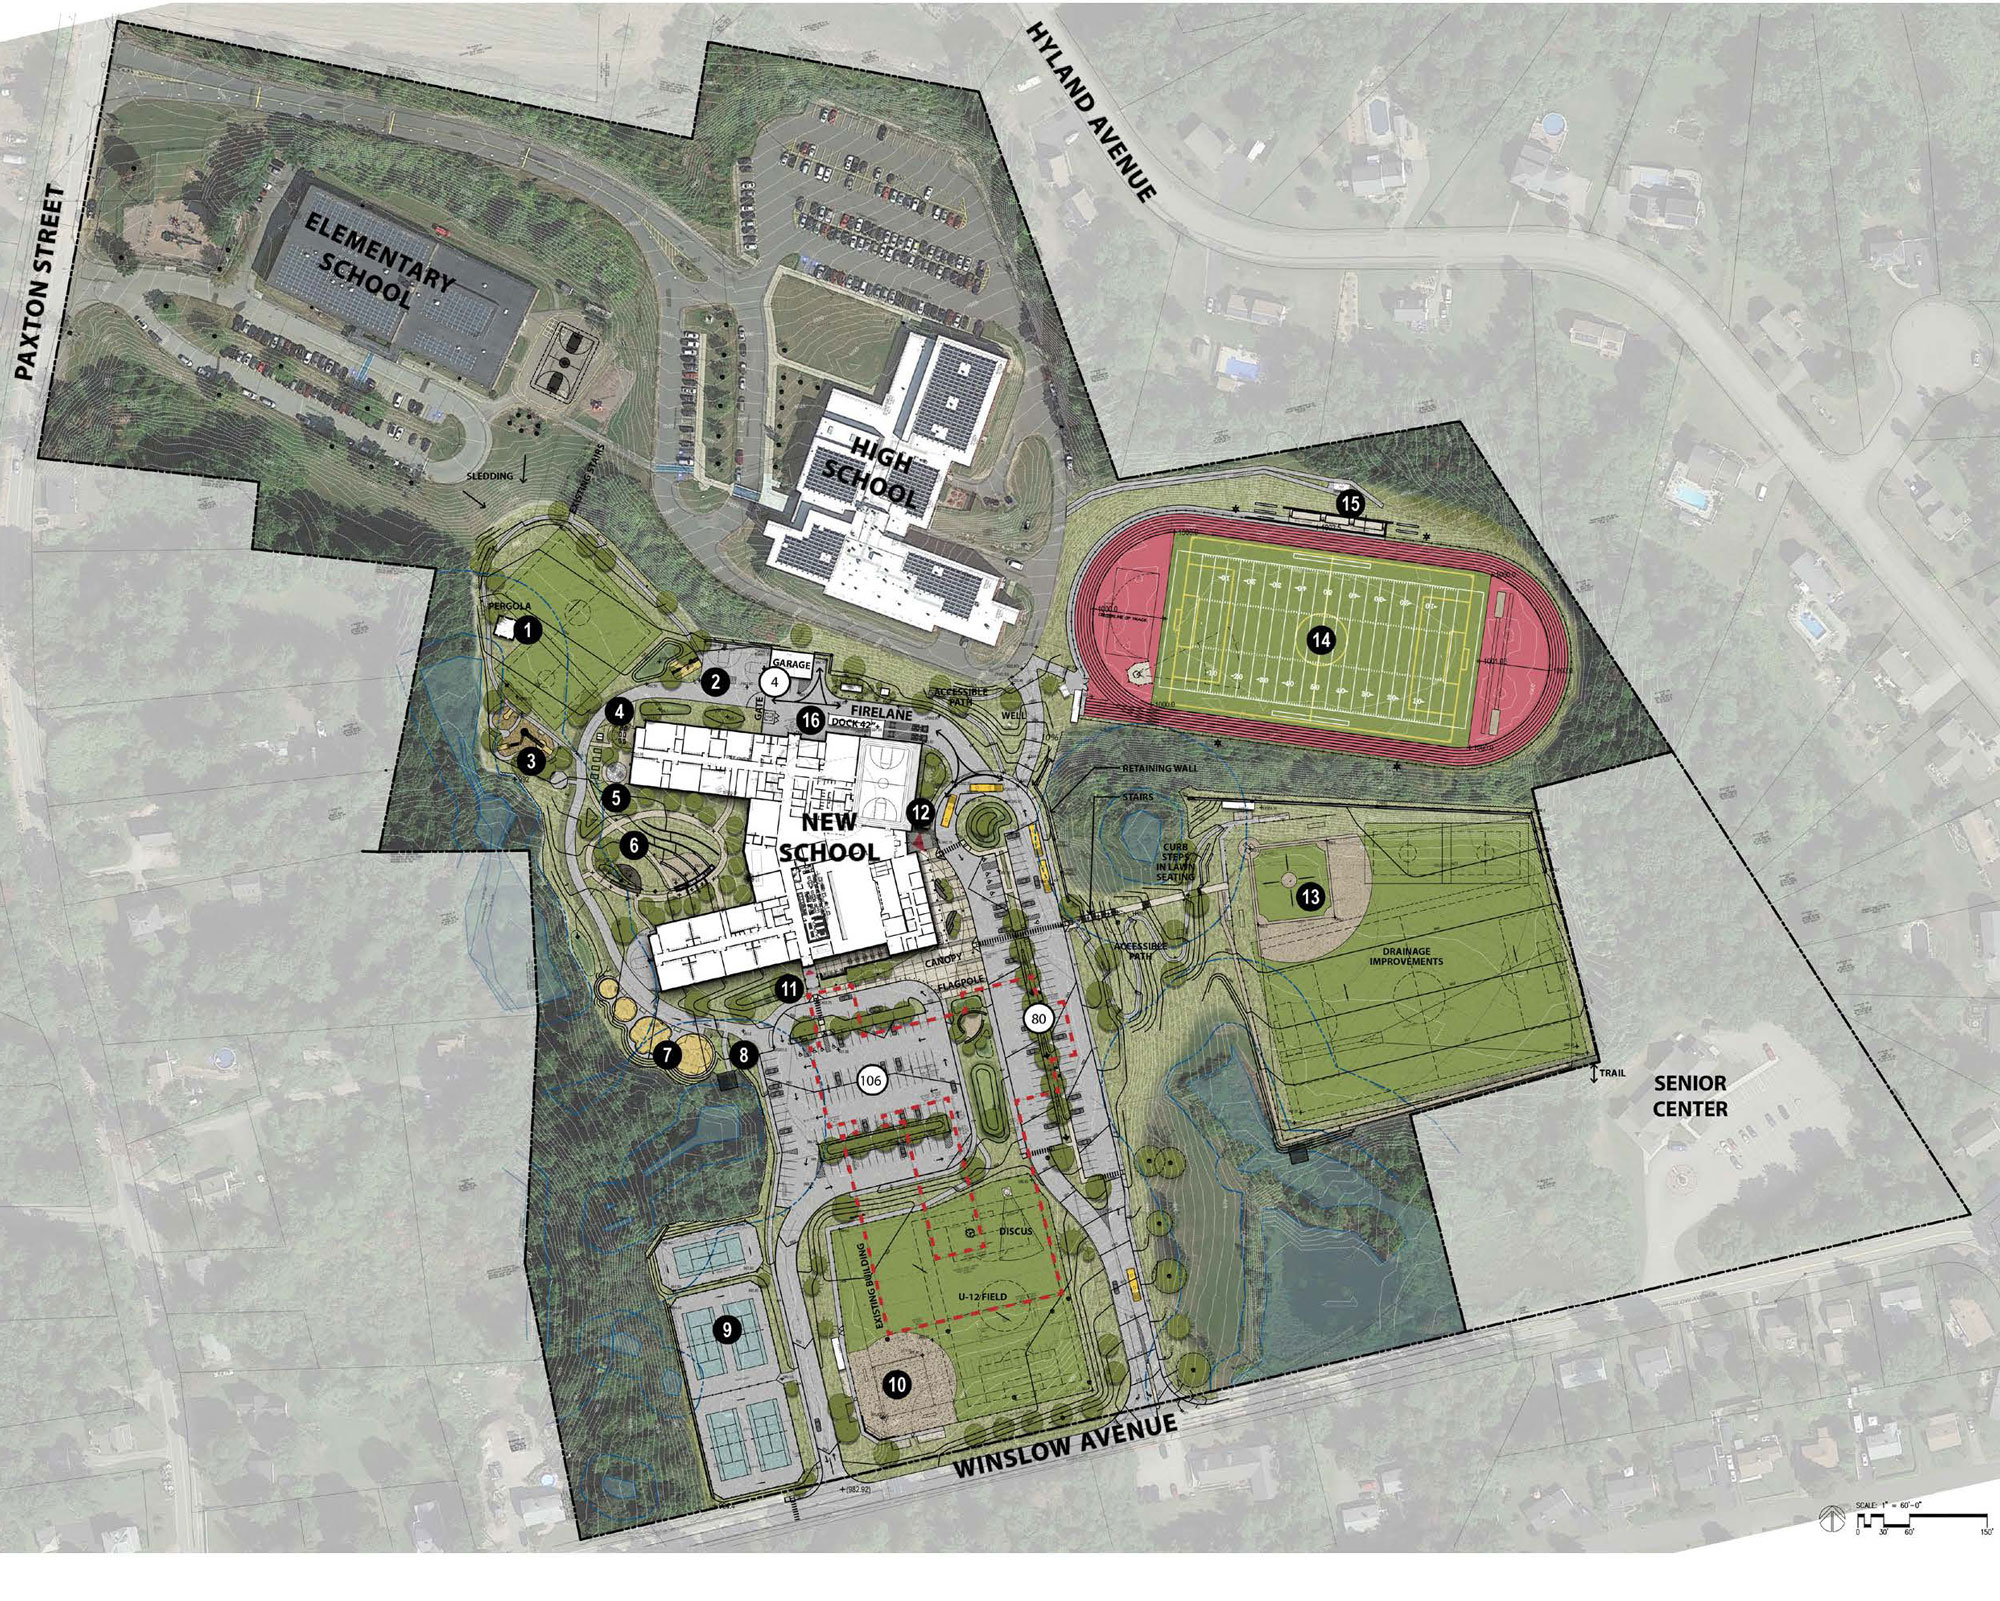 Leicester School plan with new school surrounded by a variety of landscaping and infrastructure elements, including parking, streets, tracks and fields.